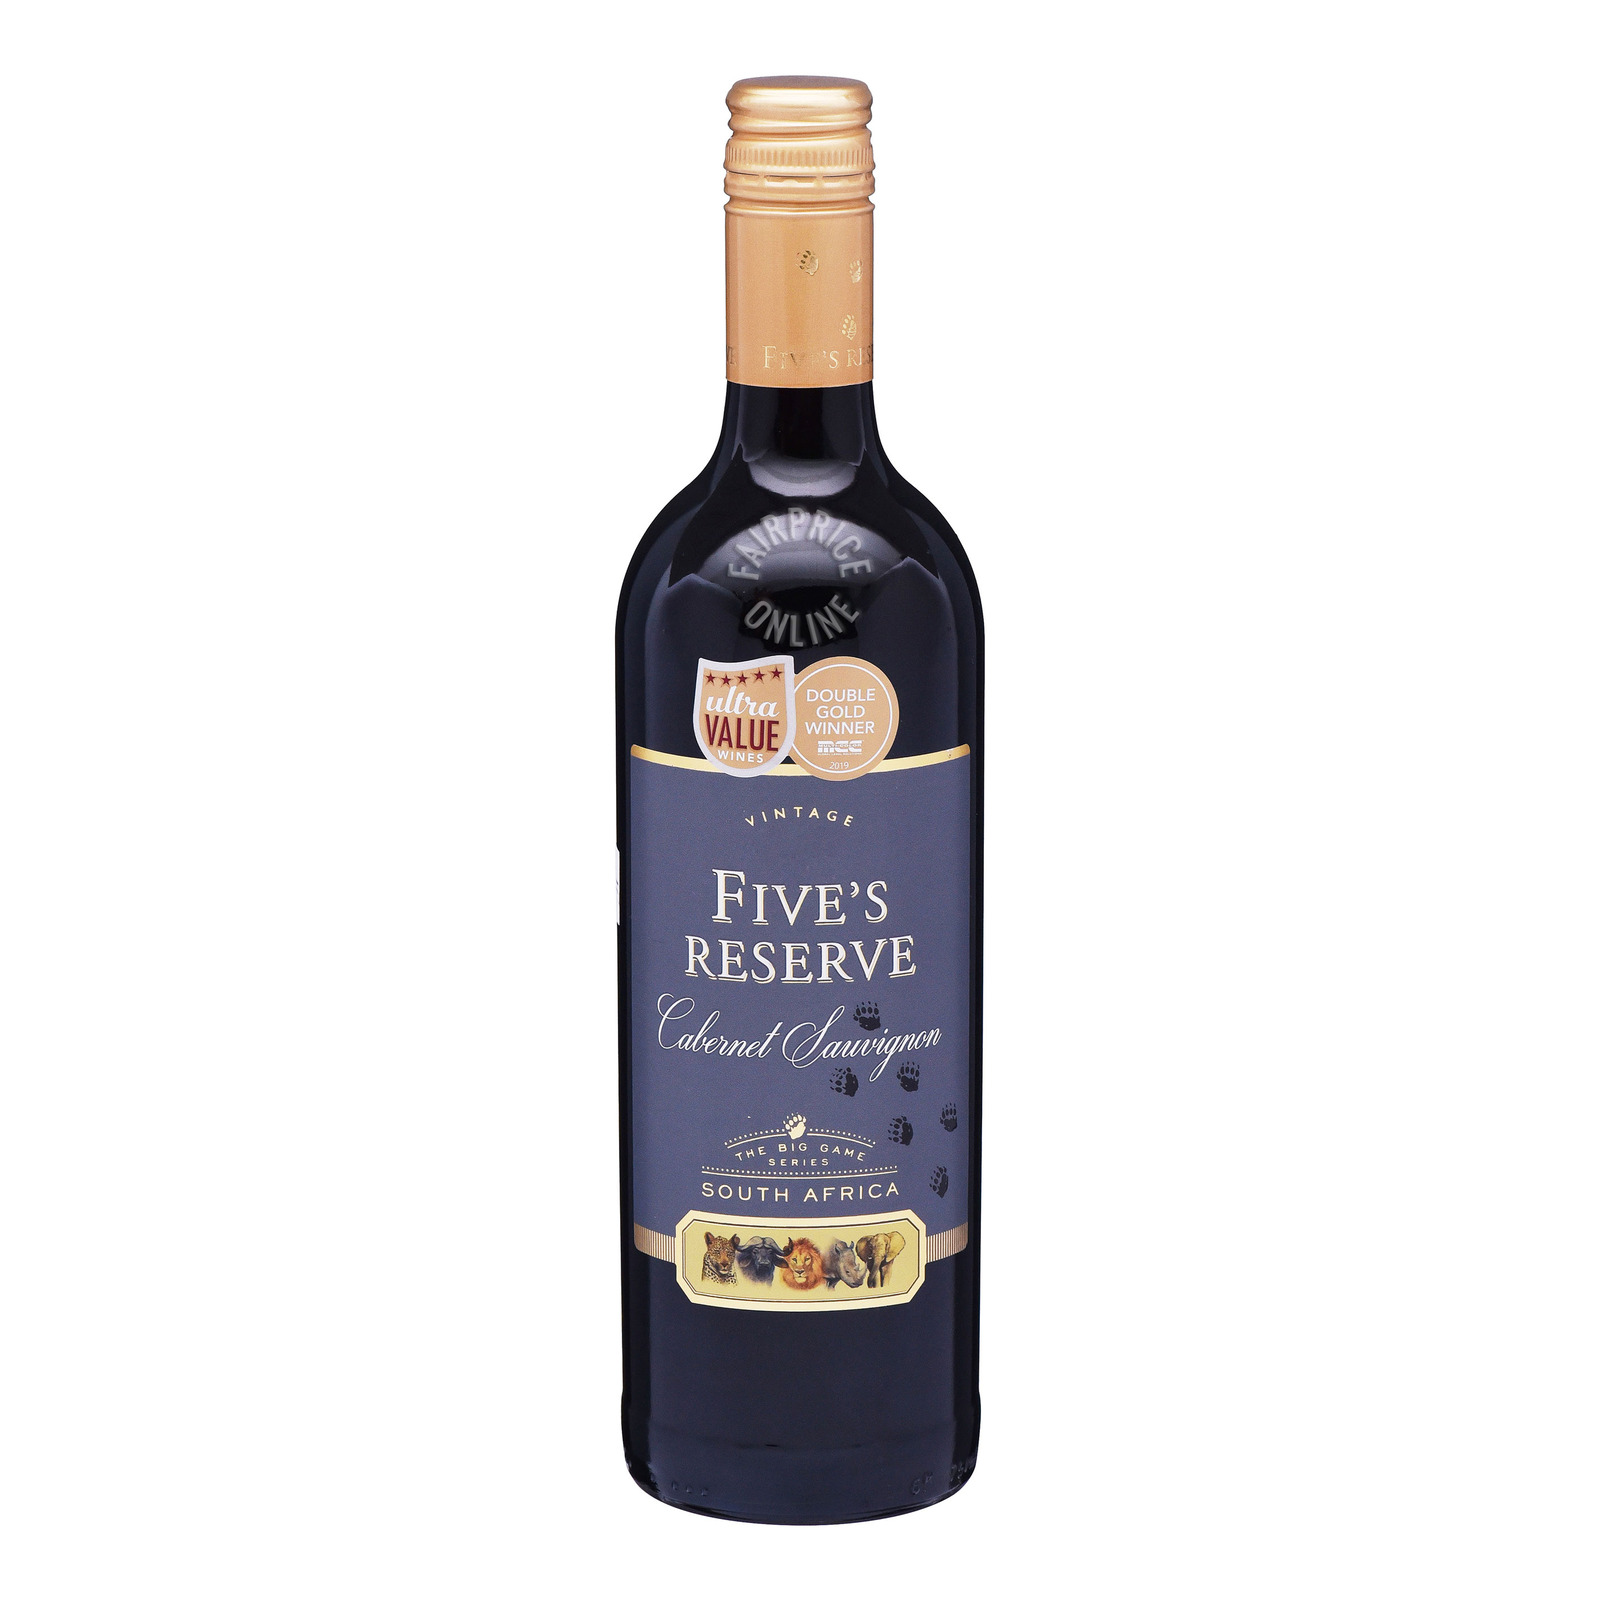 Van Loveren Five's Reserve Red Wine - Cabernet Sauvignon